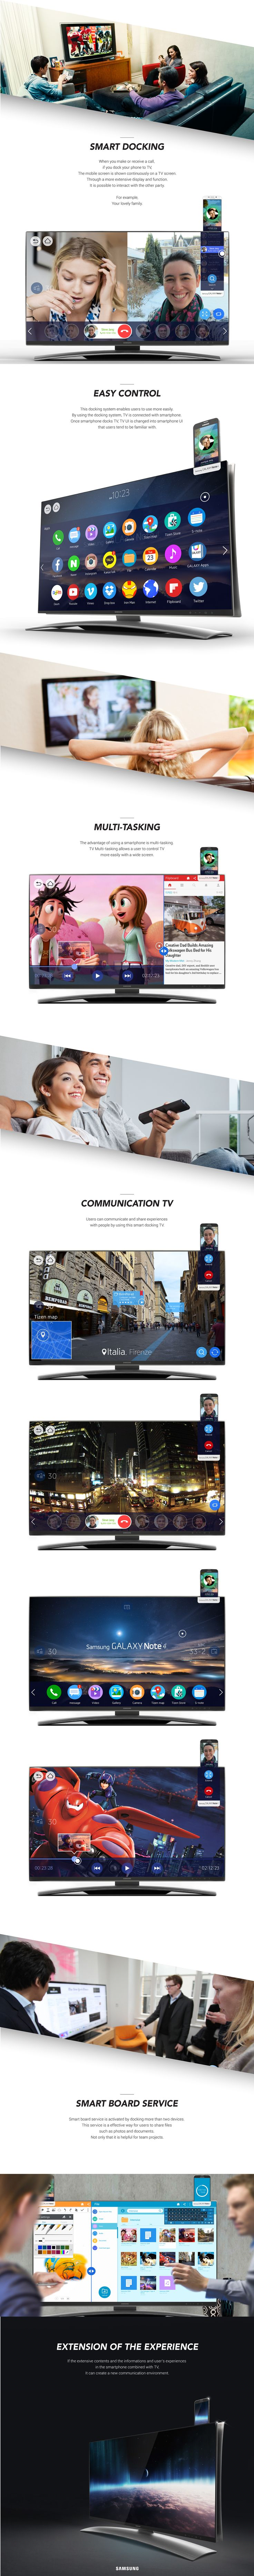 Smart Docking TV on Behance